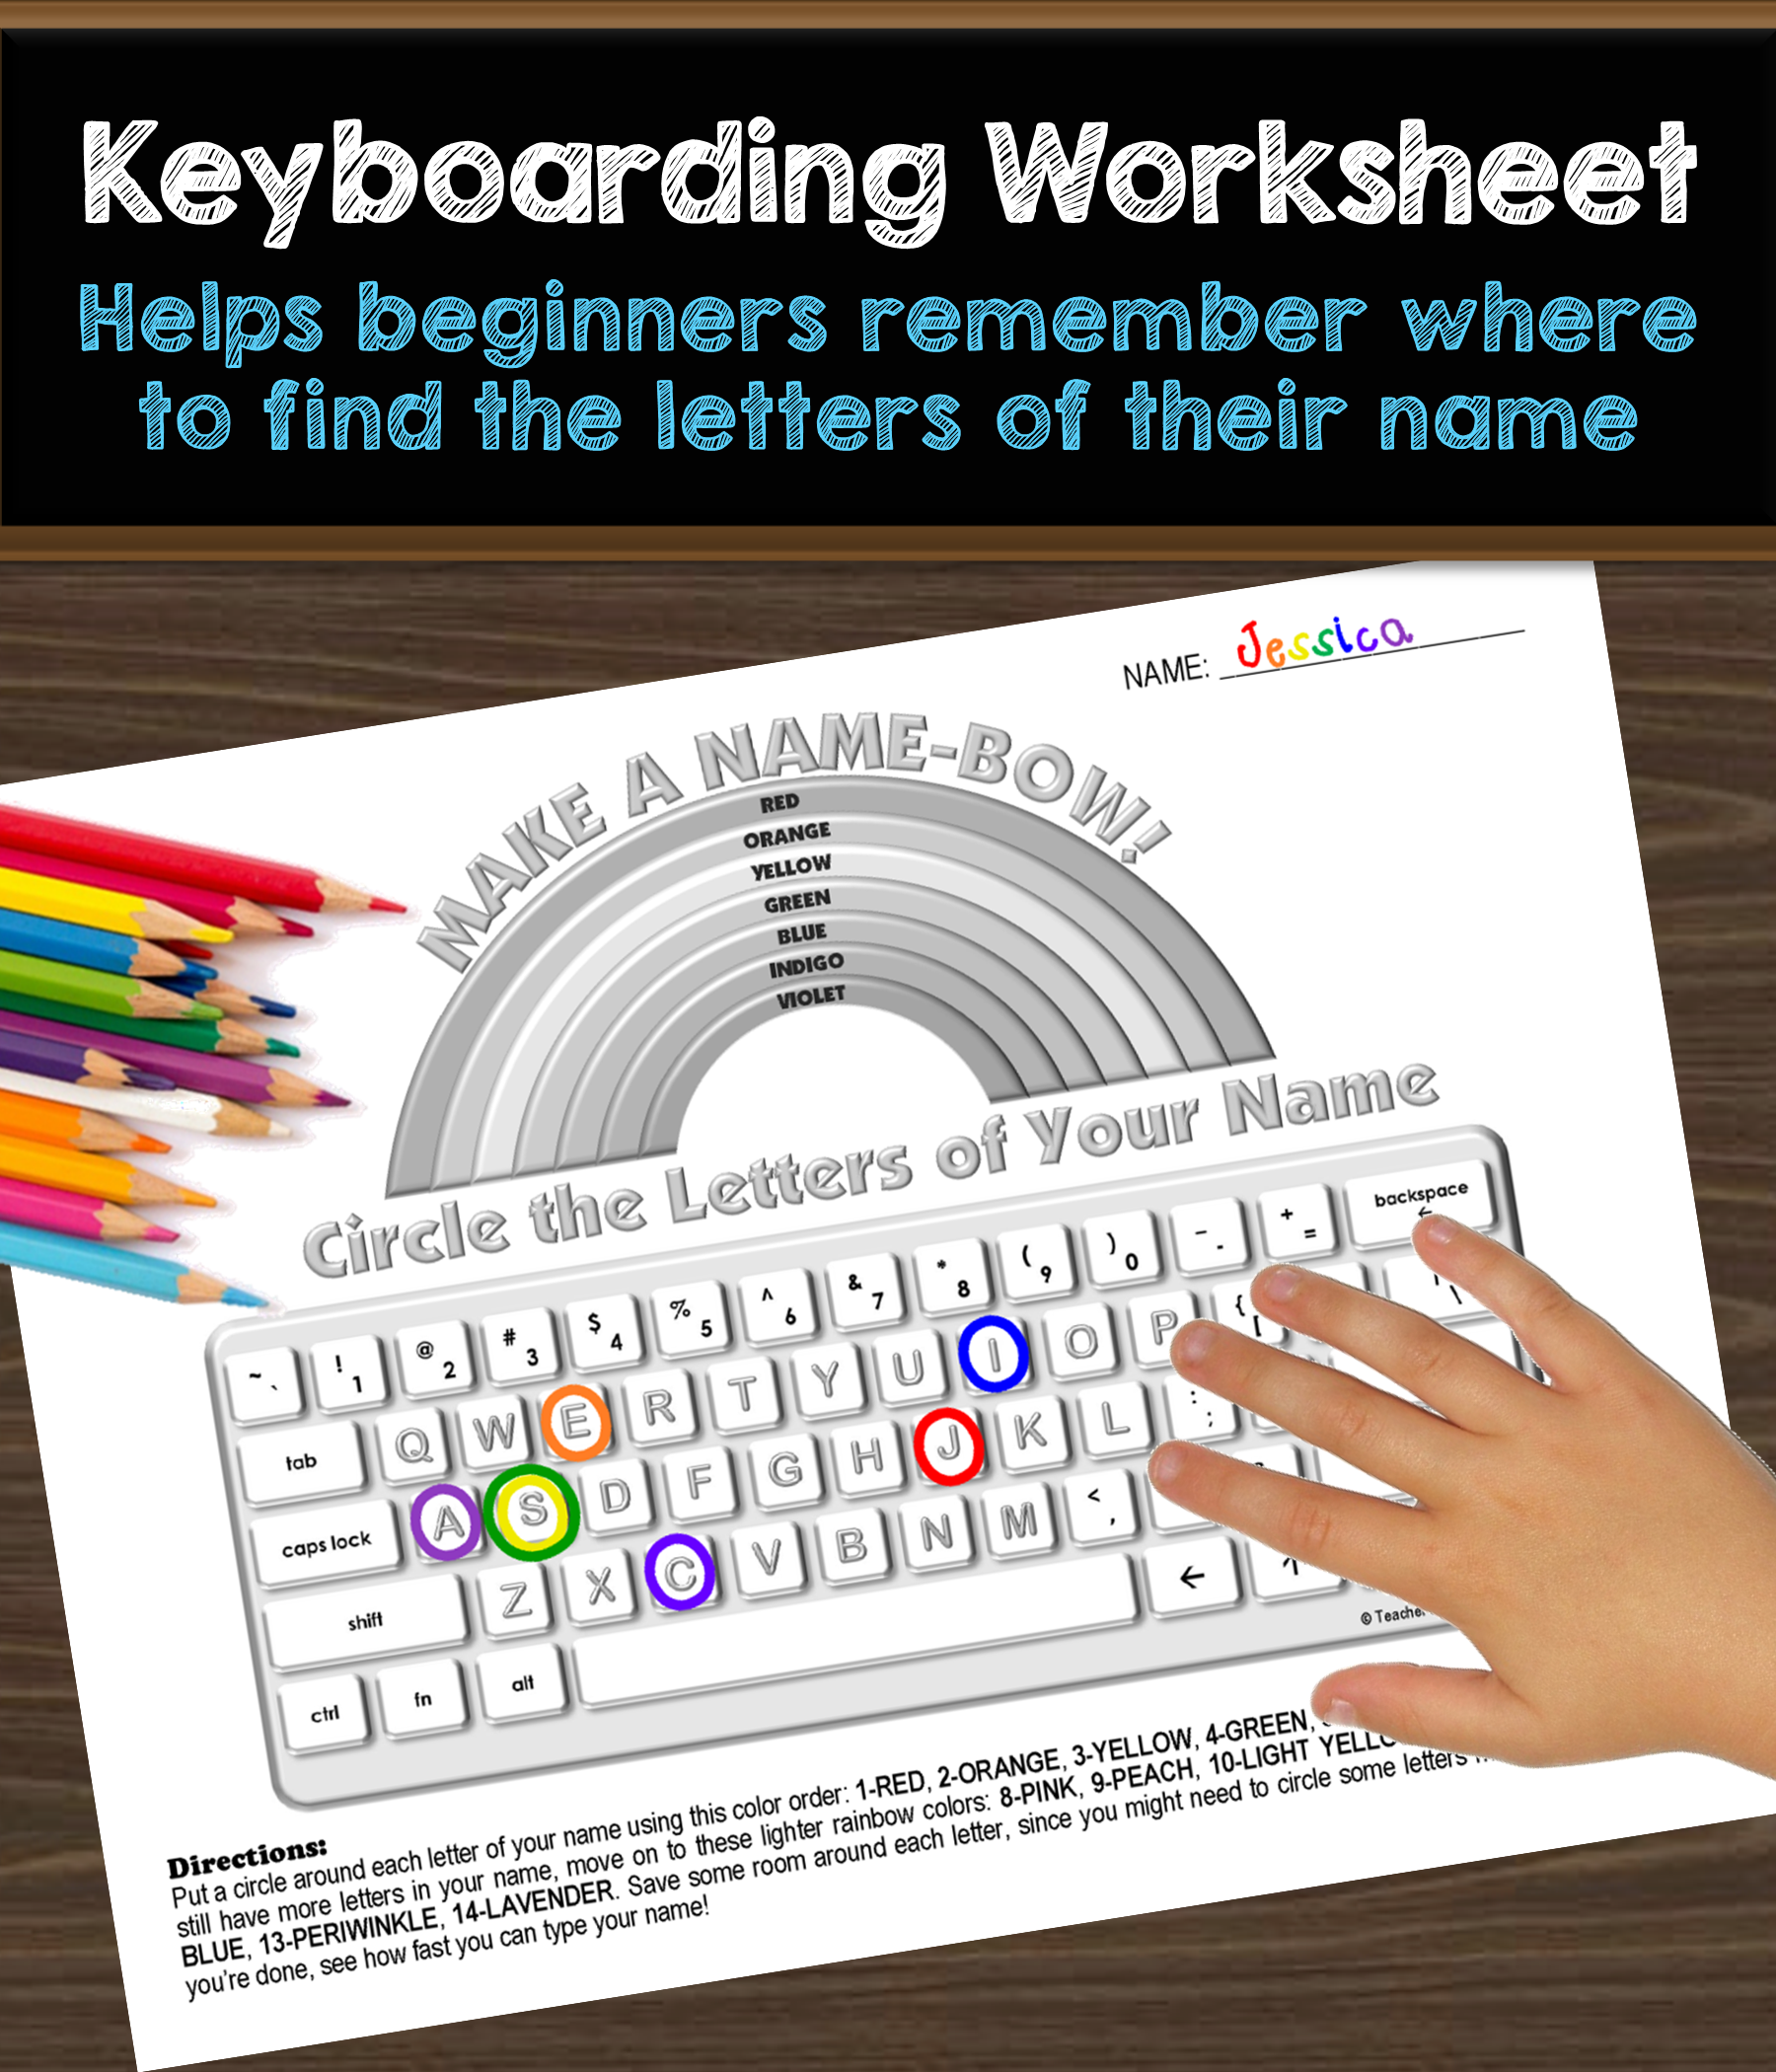 Keyboarding Worksheet A Make A Name Bow